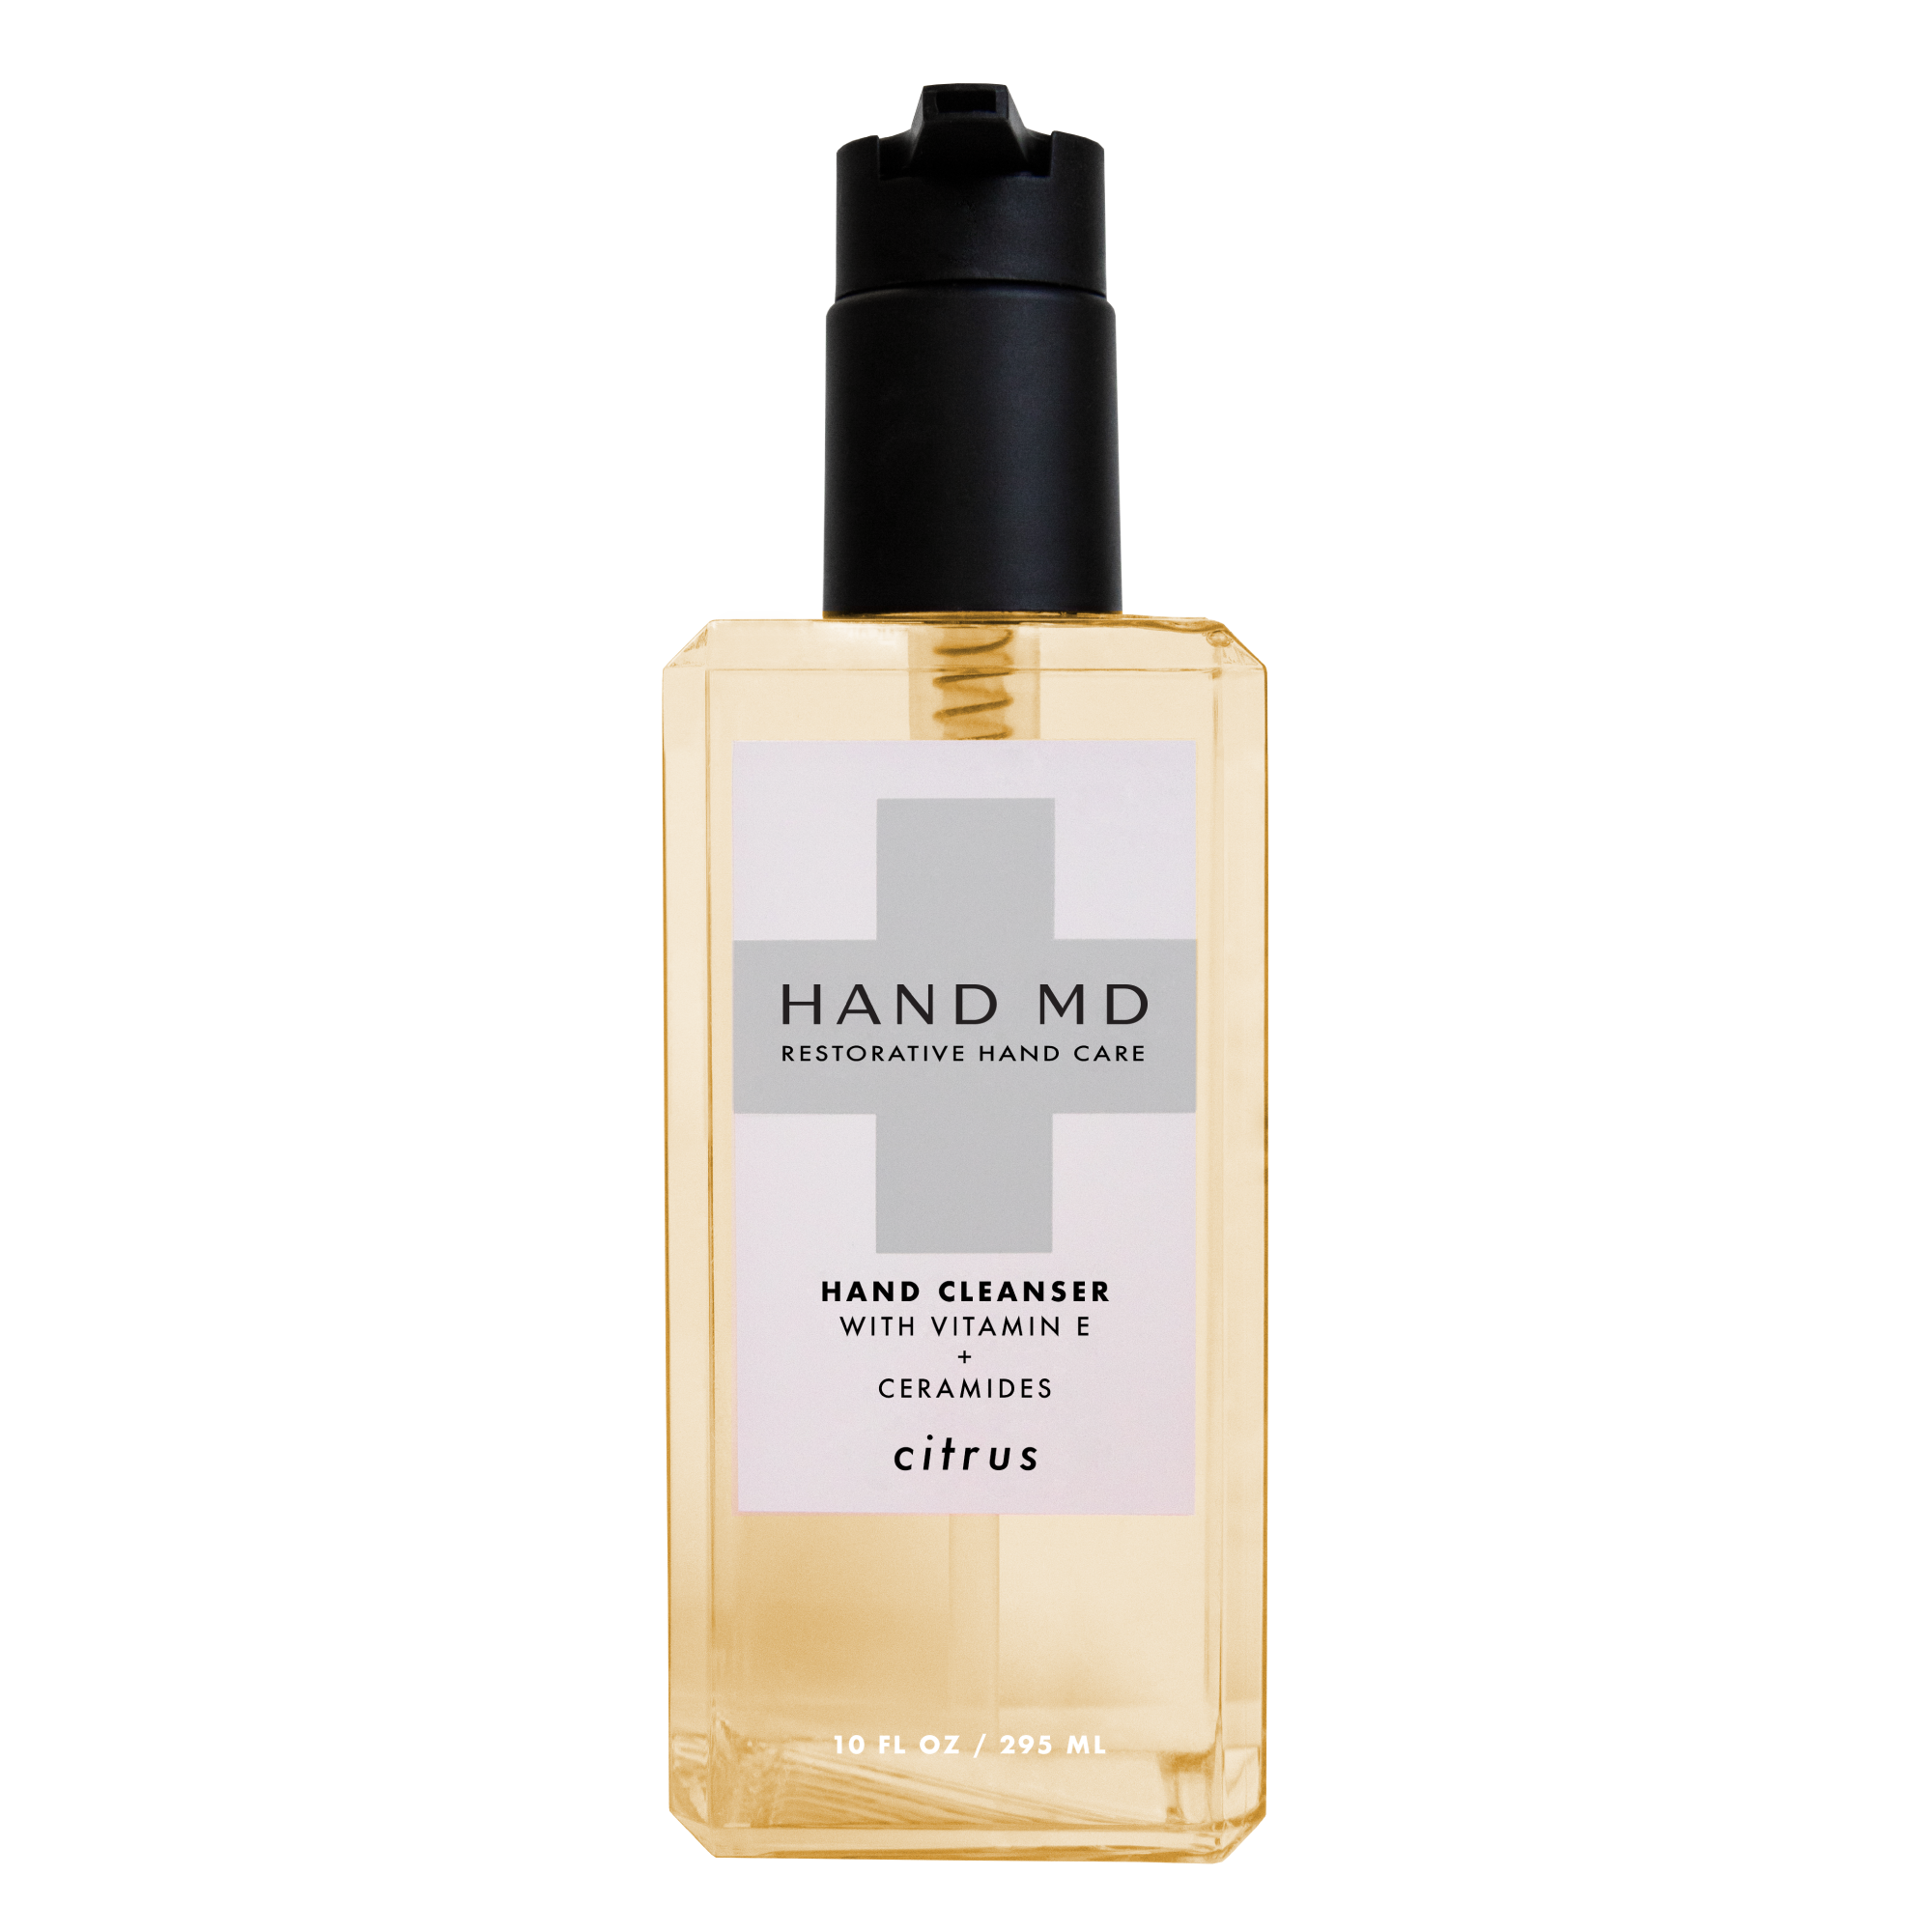 Hand Cleanser - Citrus, A hand soap packed with age-defying, hydrating ingredients such as Vitamin E, Eucalyptus Leaf, Ginger Root, Ceramides and essential oils.